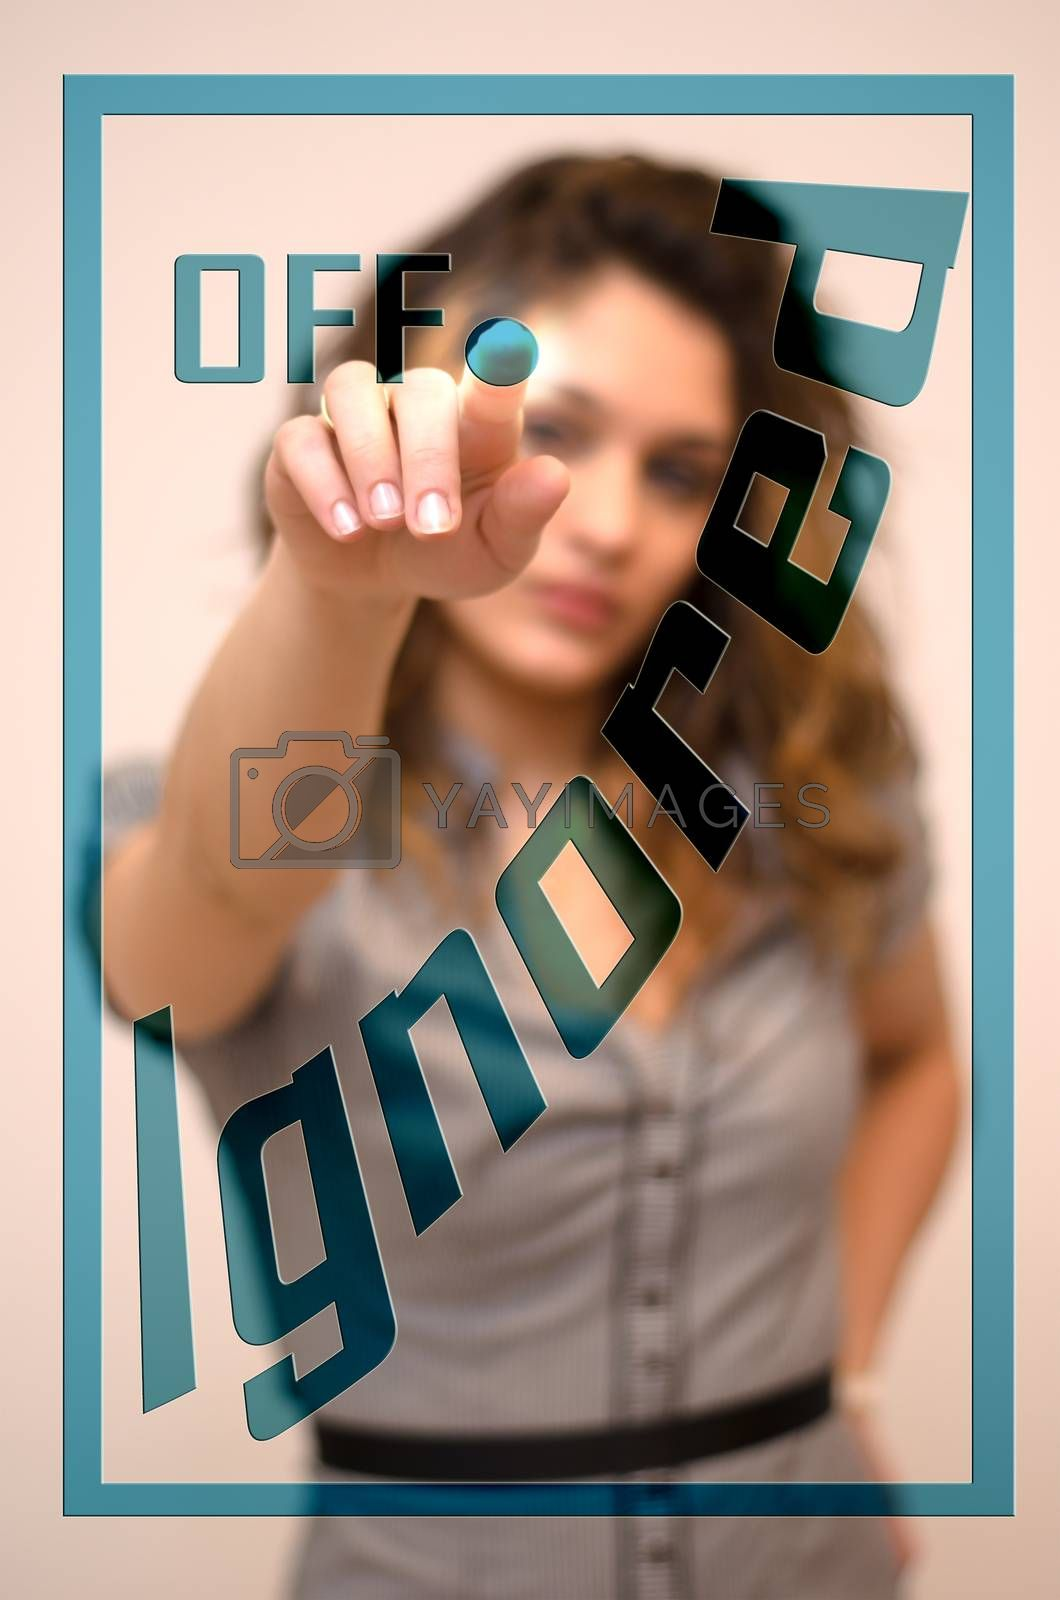 young woman turning offIgnored on hologram screen